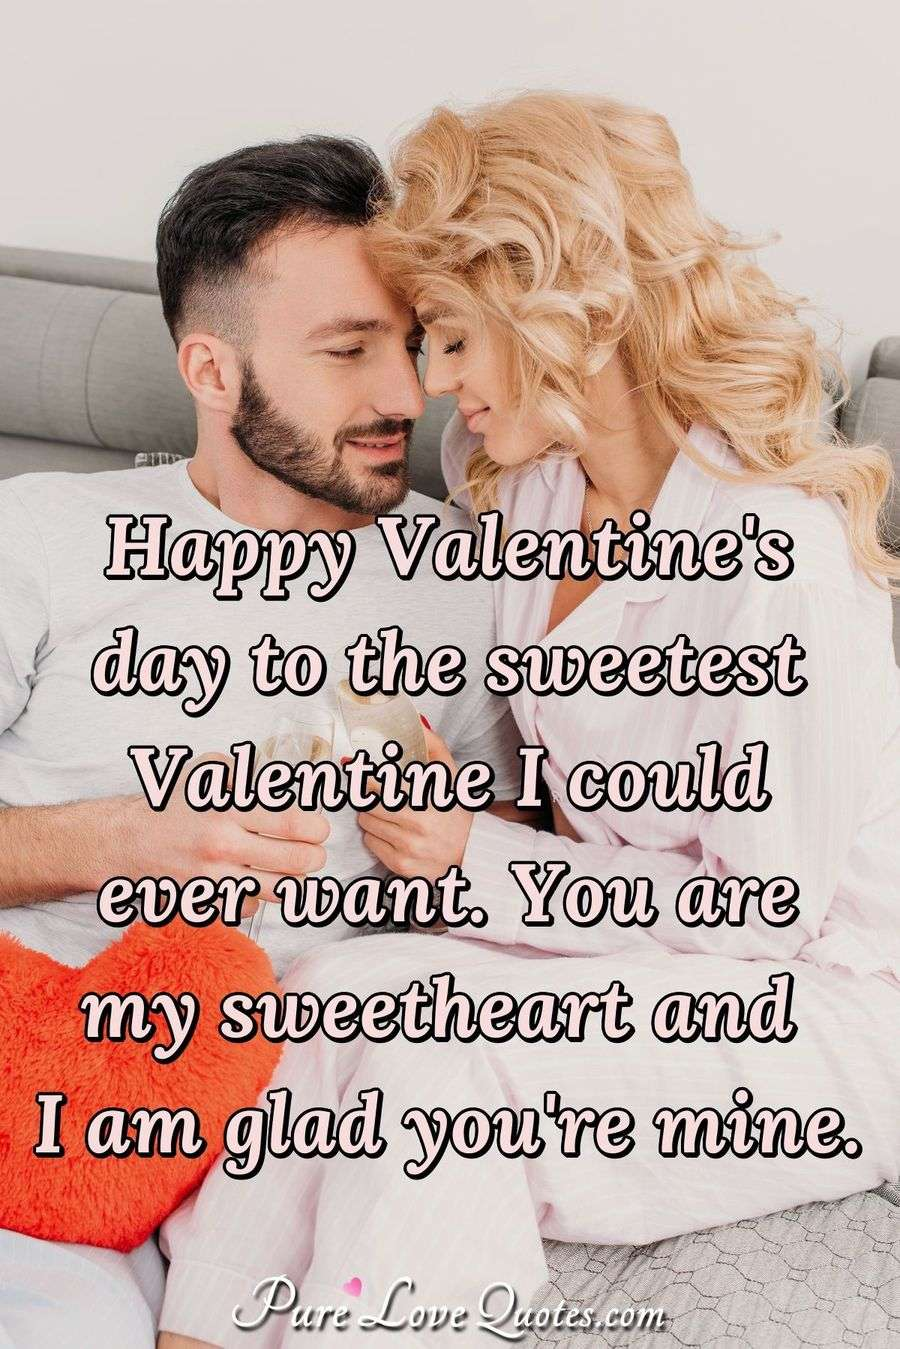 True Love Valentine Quotes: Happy Valentine's Day To The Sweetest Valentine I Could